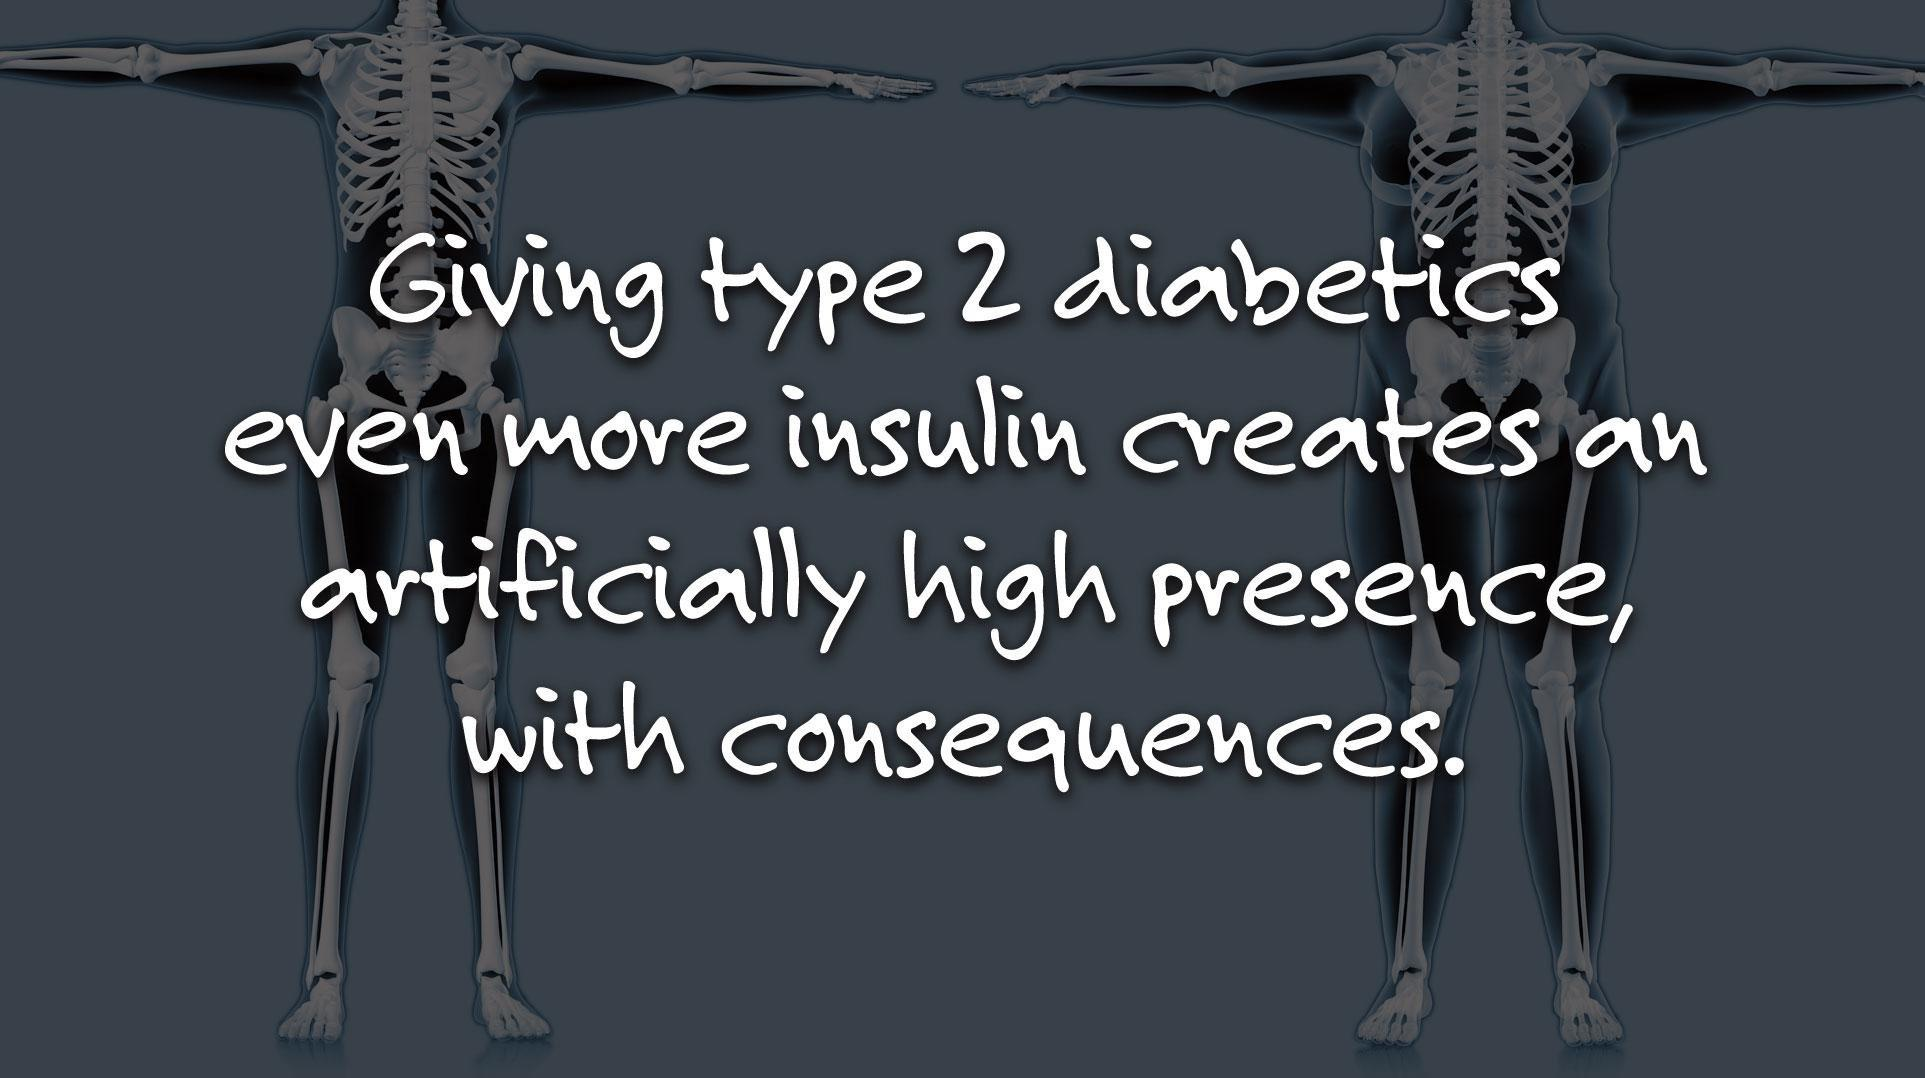 Too Much Insulin Causes Insulin Resistance